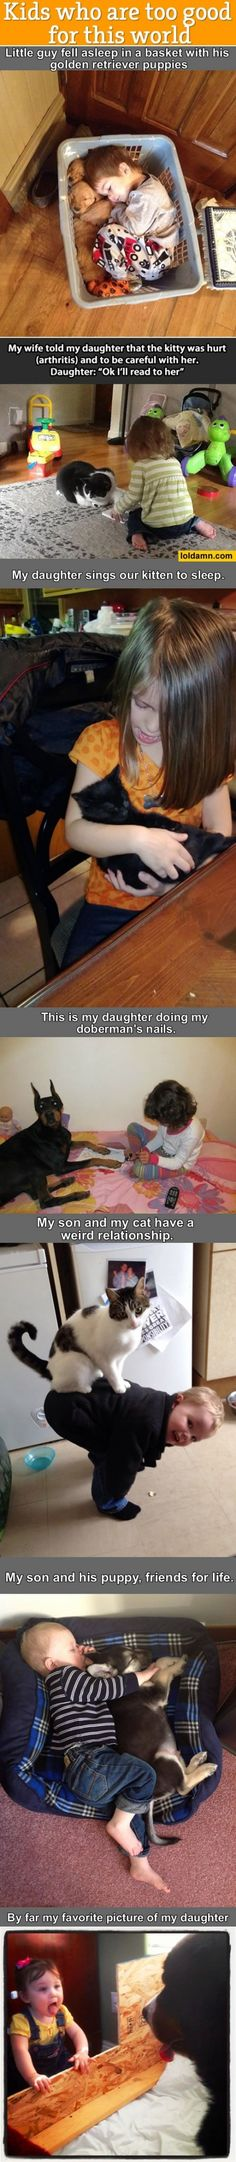 Kids and their furry friends :)